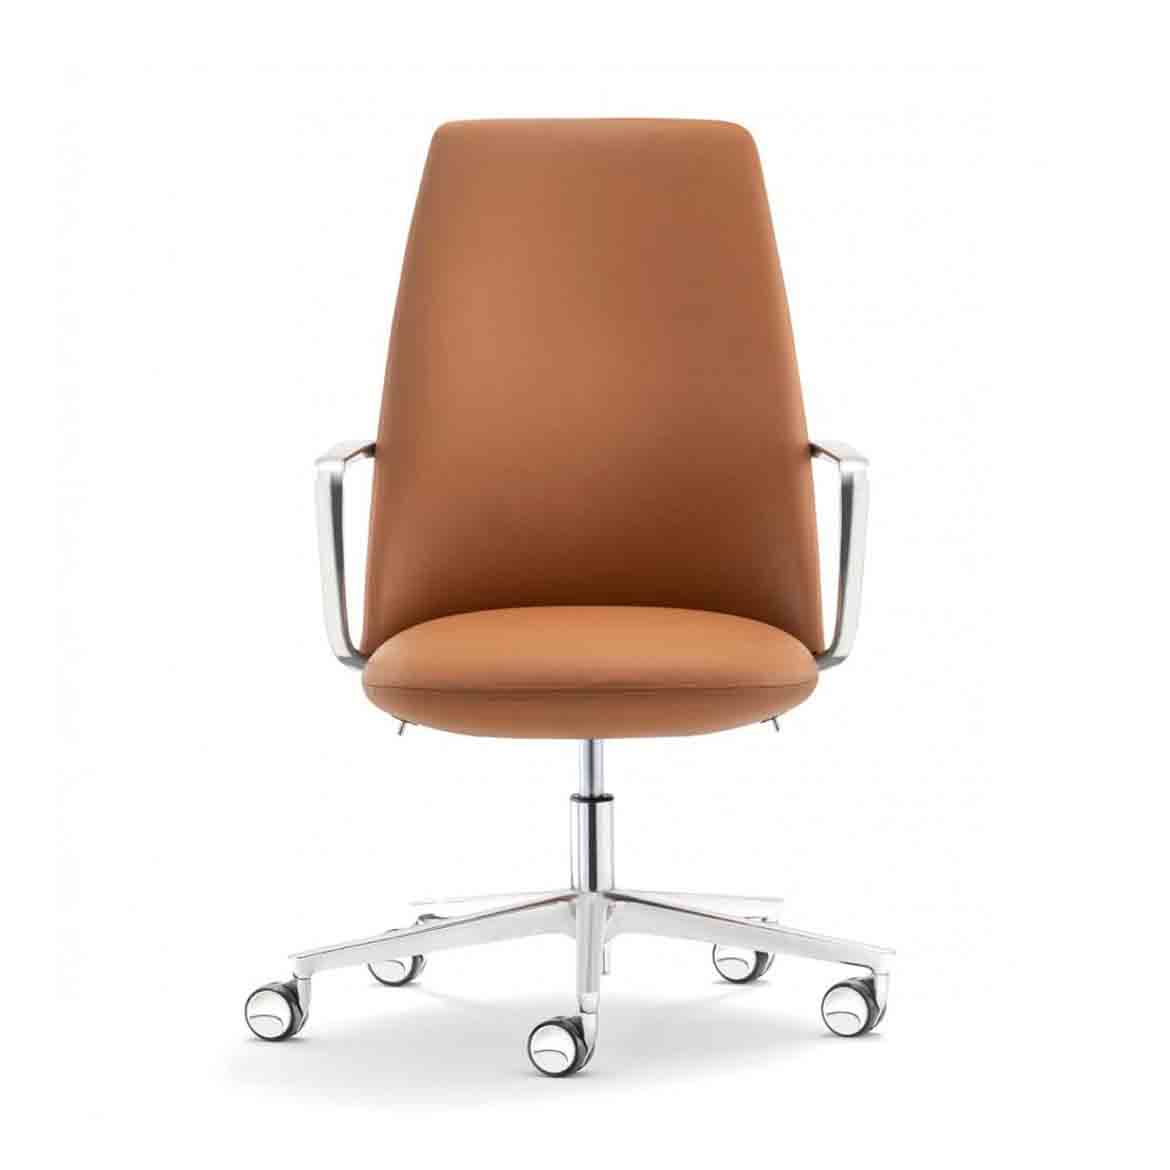 Upholstered swivel chair with die-cast aluminium armrest and hight adjustable seat. Five-star aluminium base.